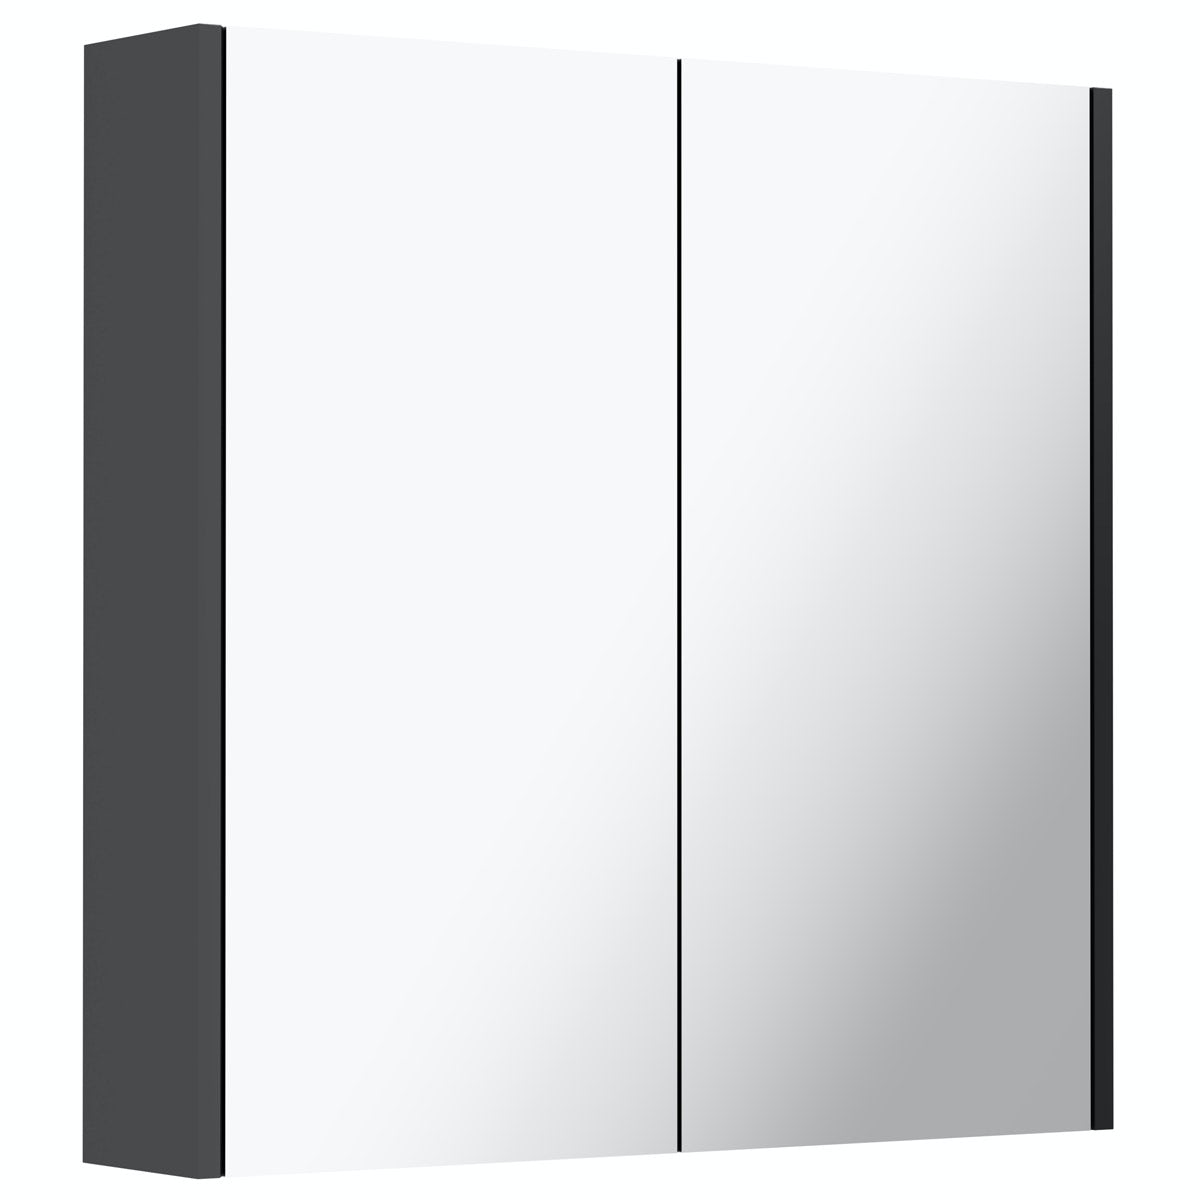 Mode Cooper anthracite mirror cabinet 650mm